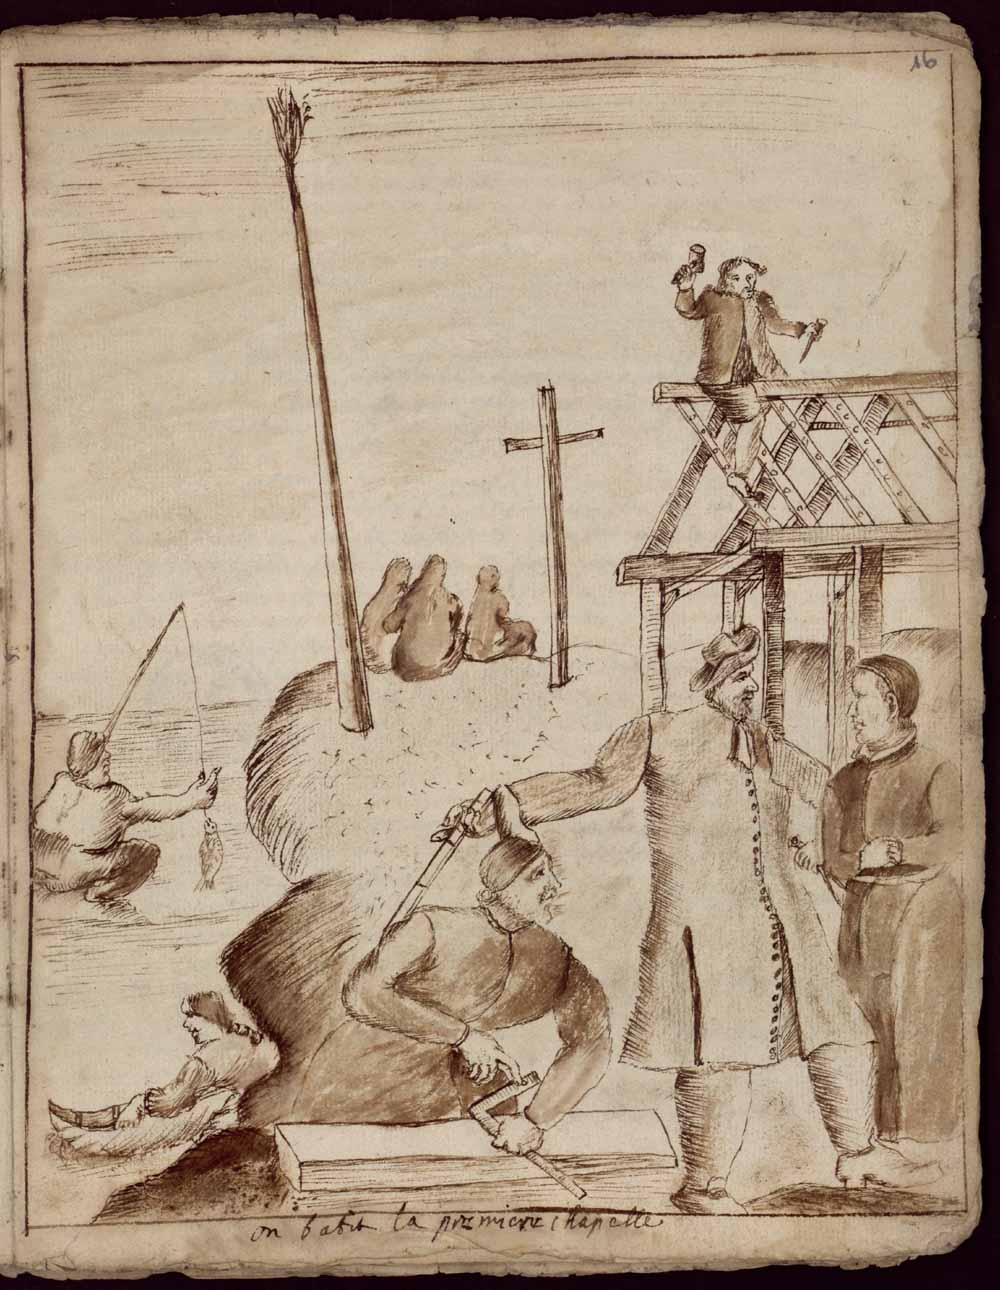 Building the first chapel], from the Narration annuelle de la mission du Sault [Saint-Louis]…, by Father Claude Chauchetière, 1667-1686, FR AD33 Série H Jésuites fol. 16